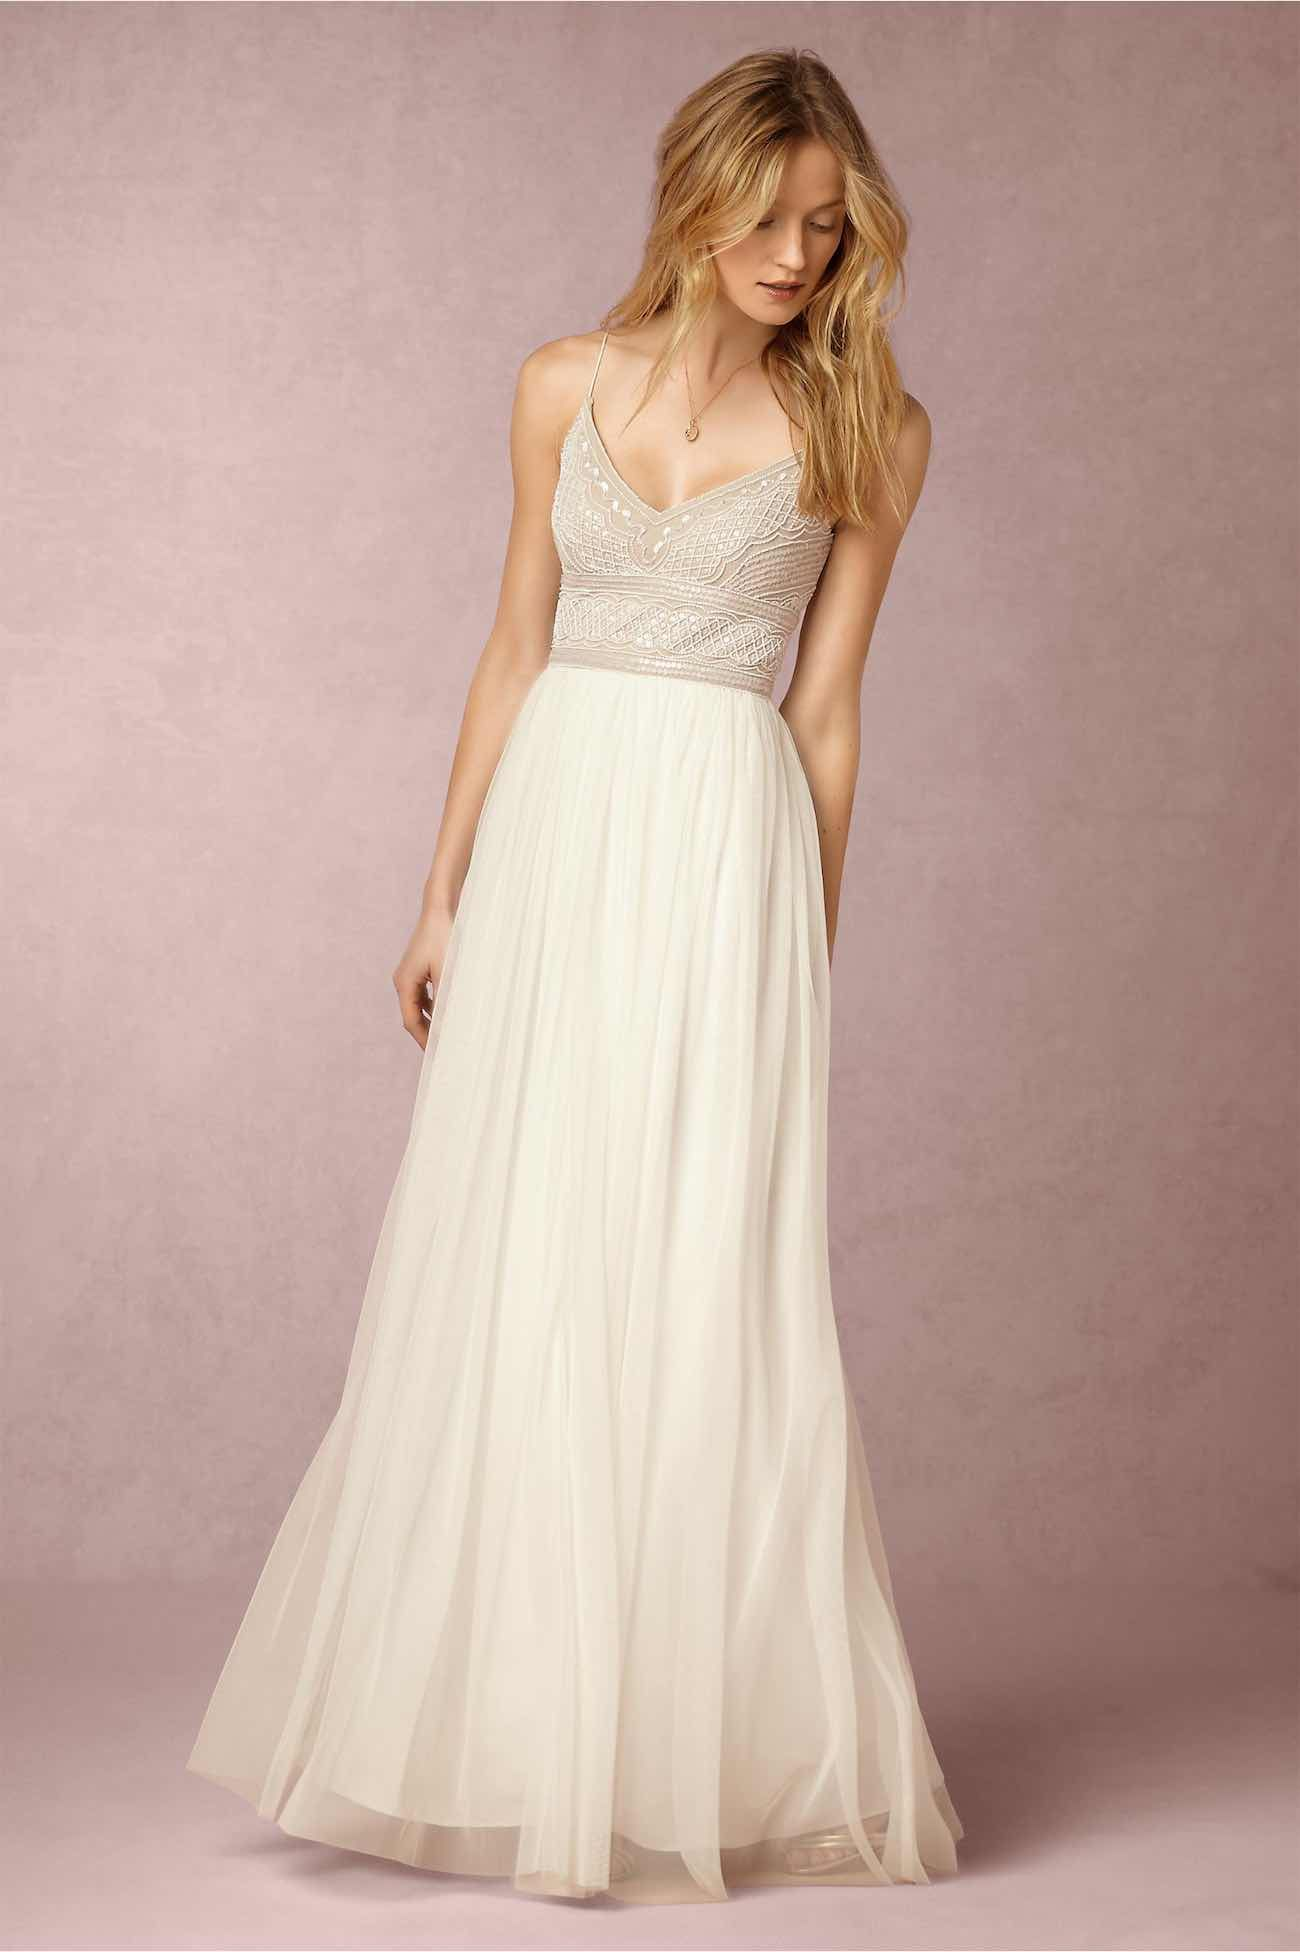 exquisitely romantic bohemian wedding dresses vestidos de noche